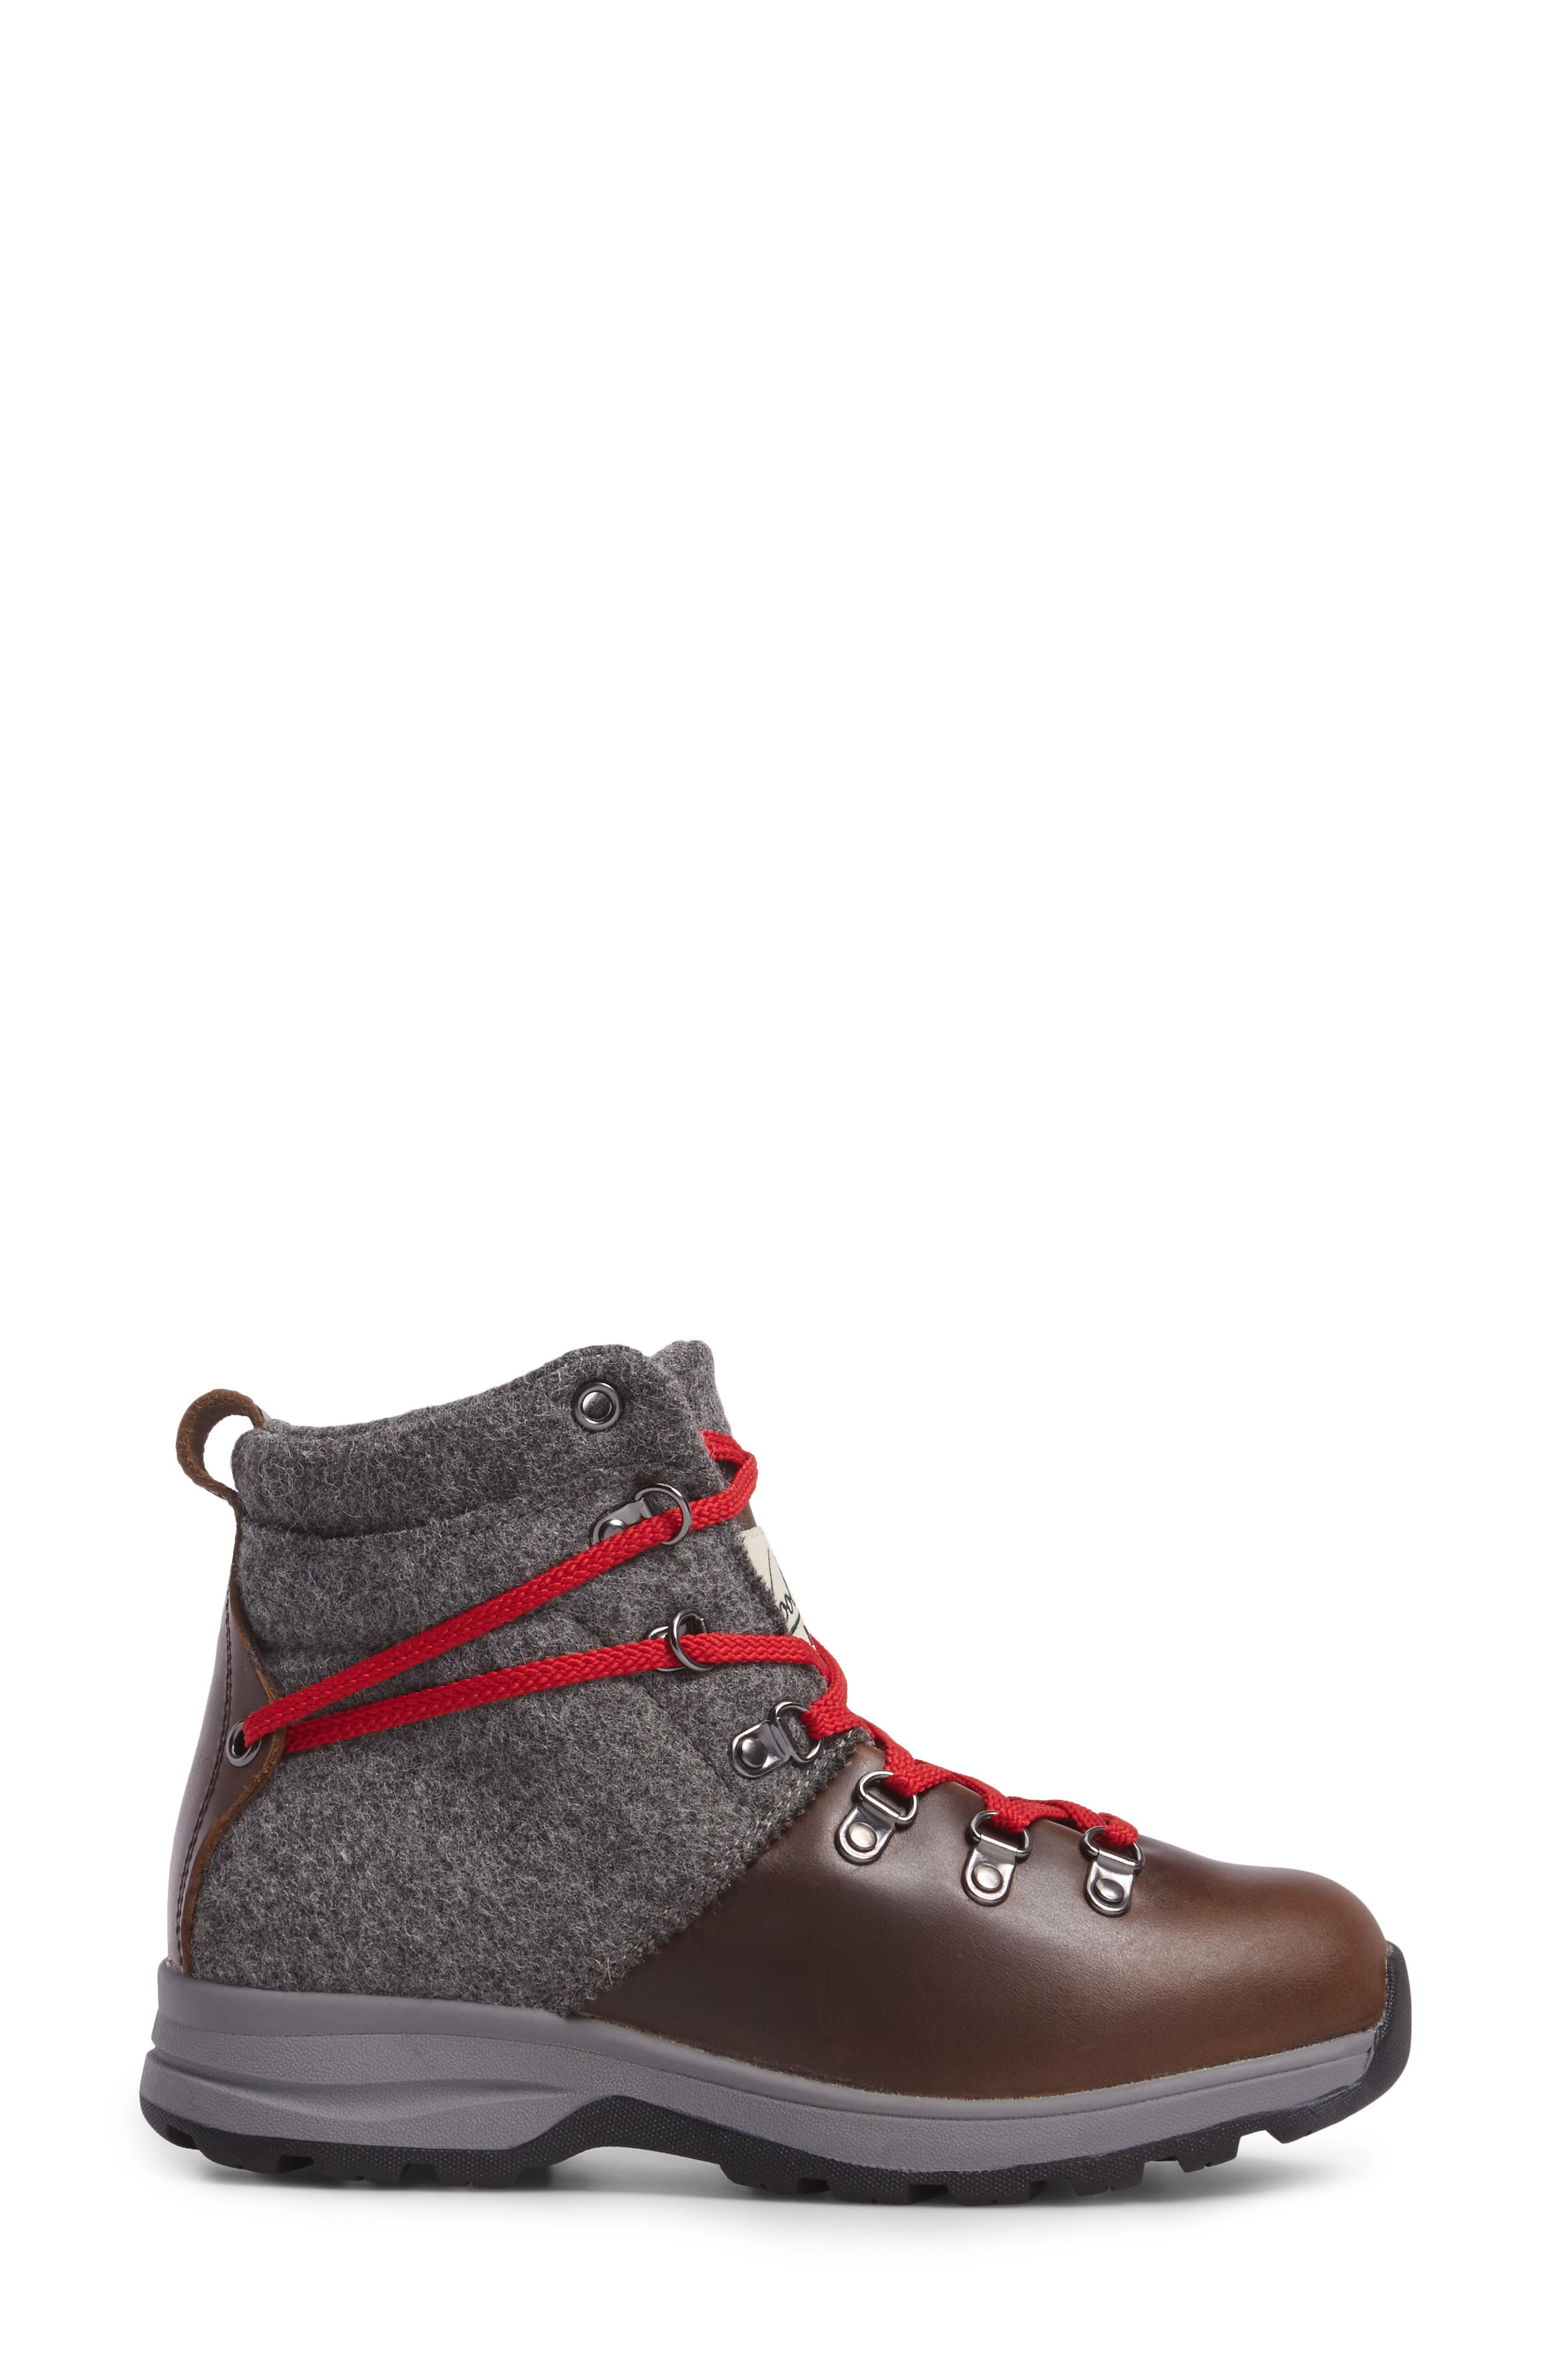 Alternate Image 3  - Woolrich Rockies II Waterproof Hiking Boot (Women)